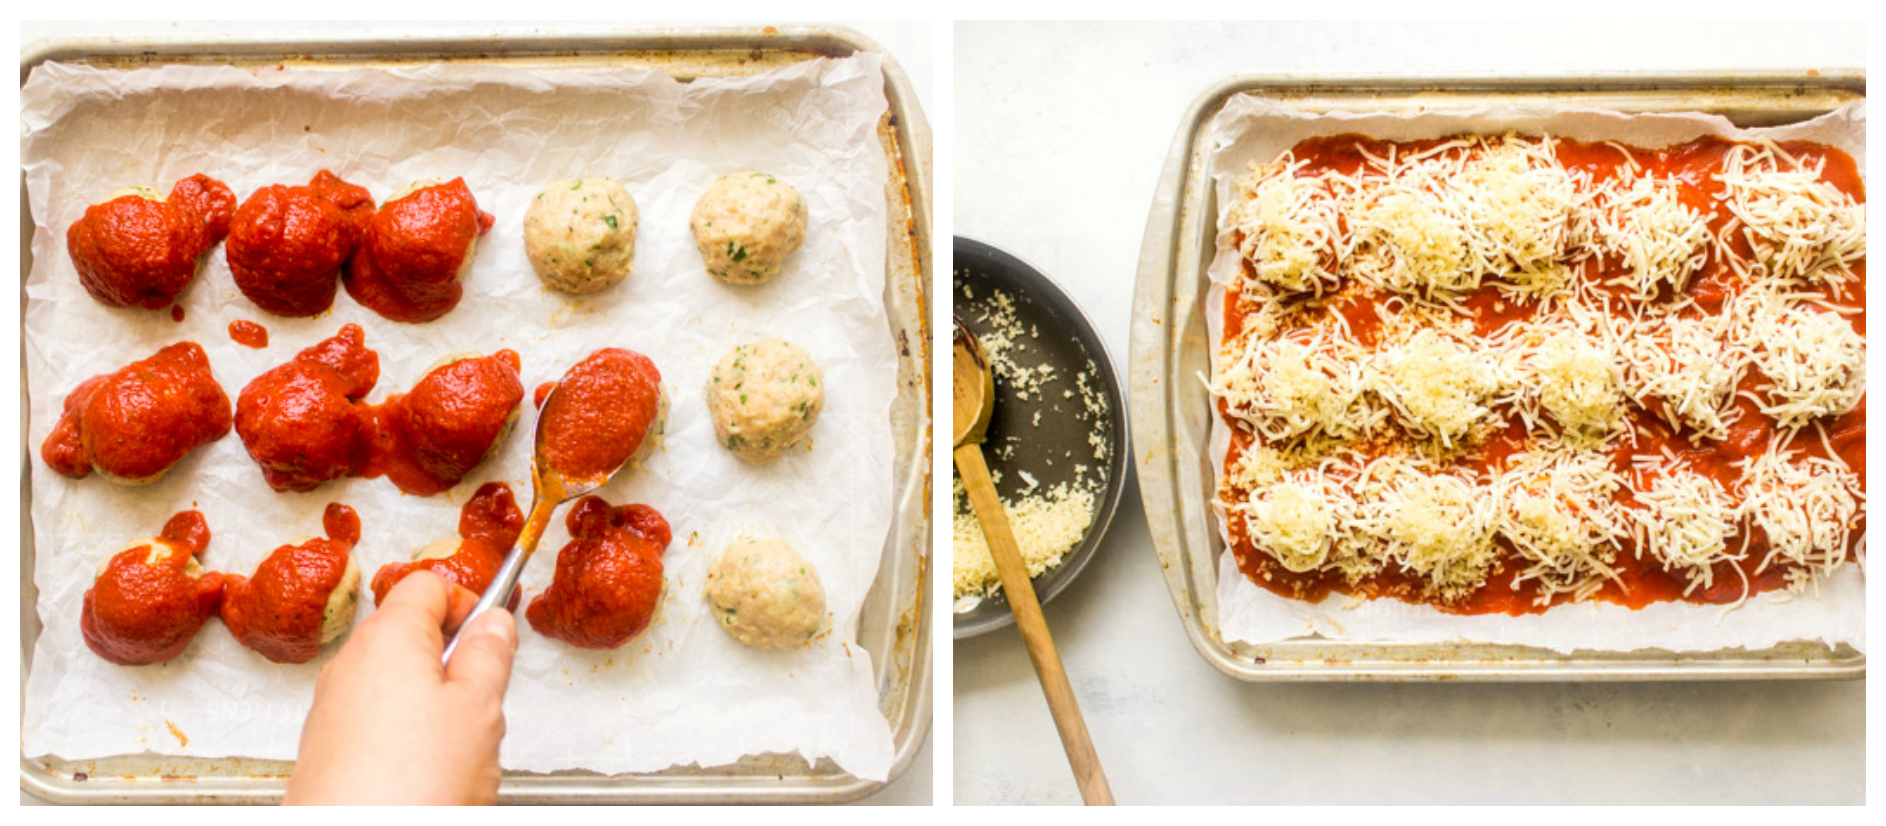 Oven baked chicken parmesan meatballs